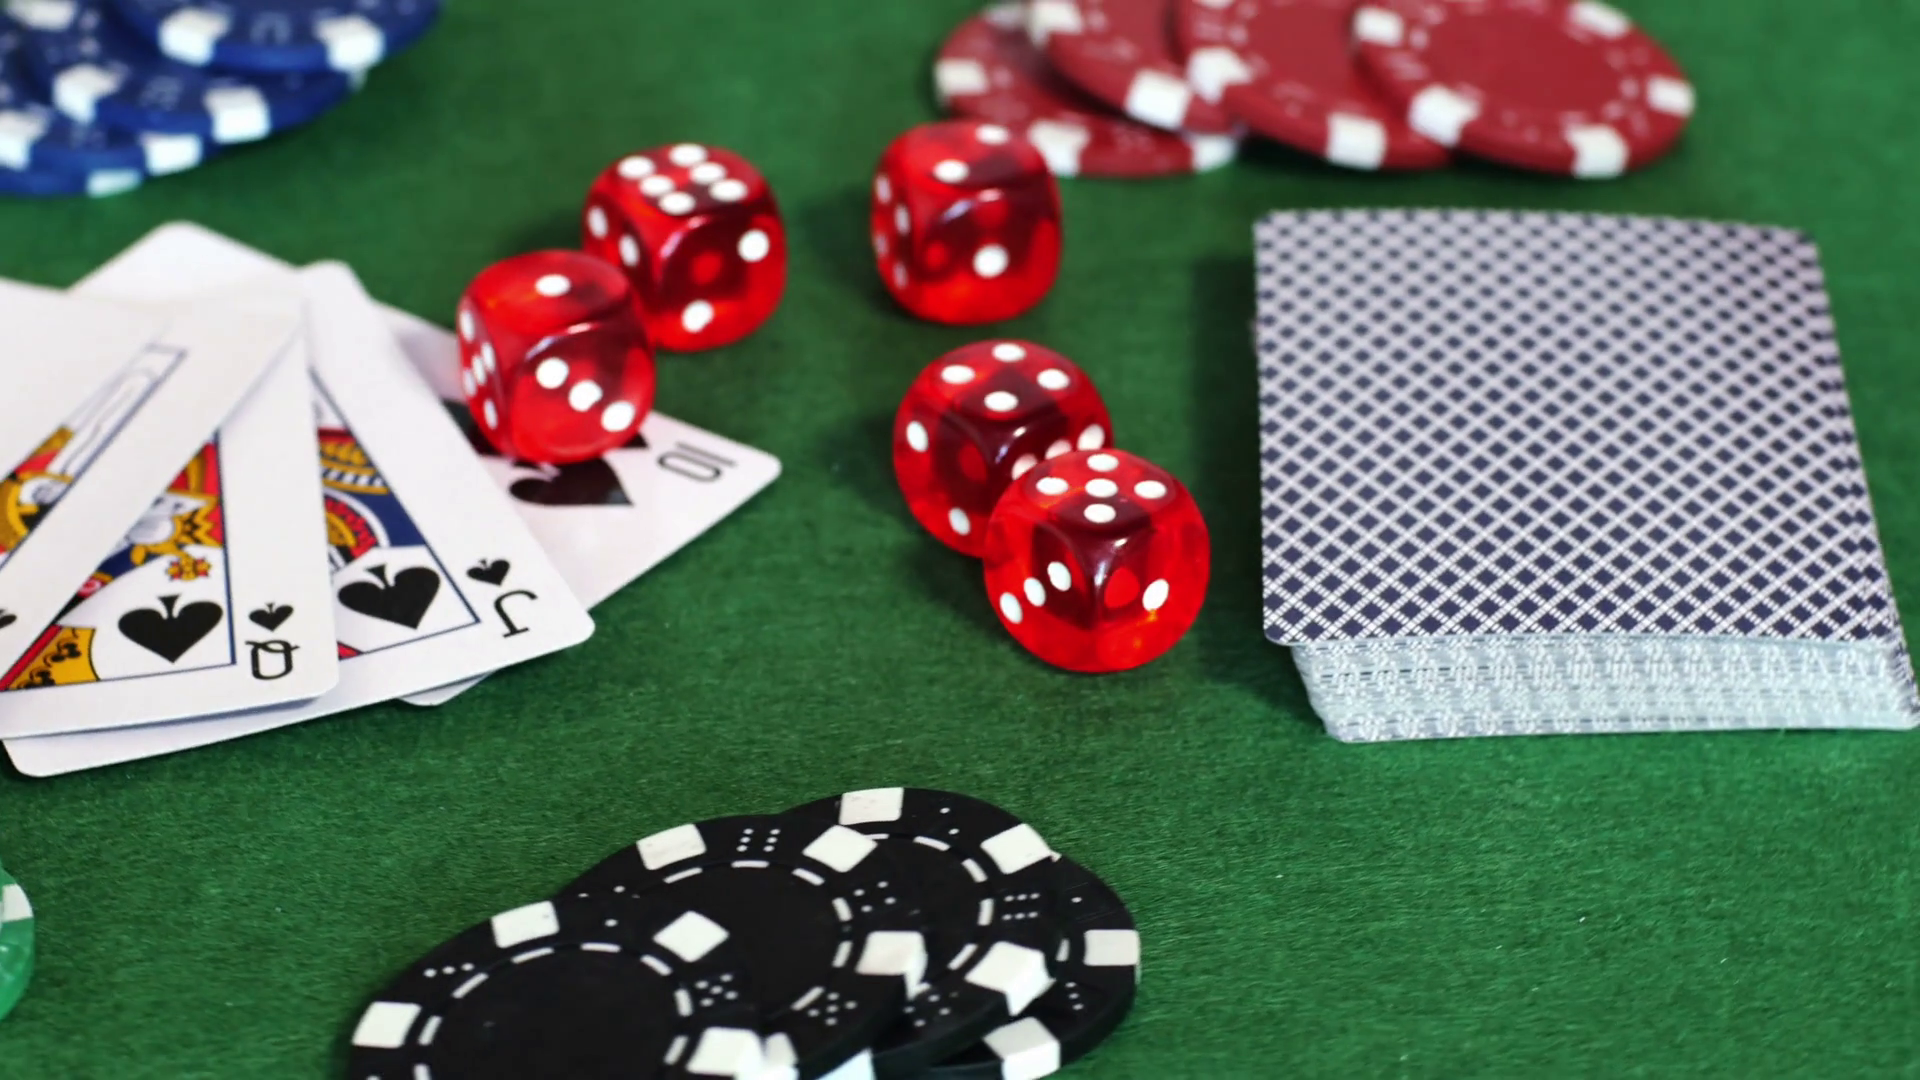 Gaining at Gambling - 9 Rules For Gambling Success